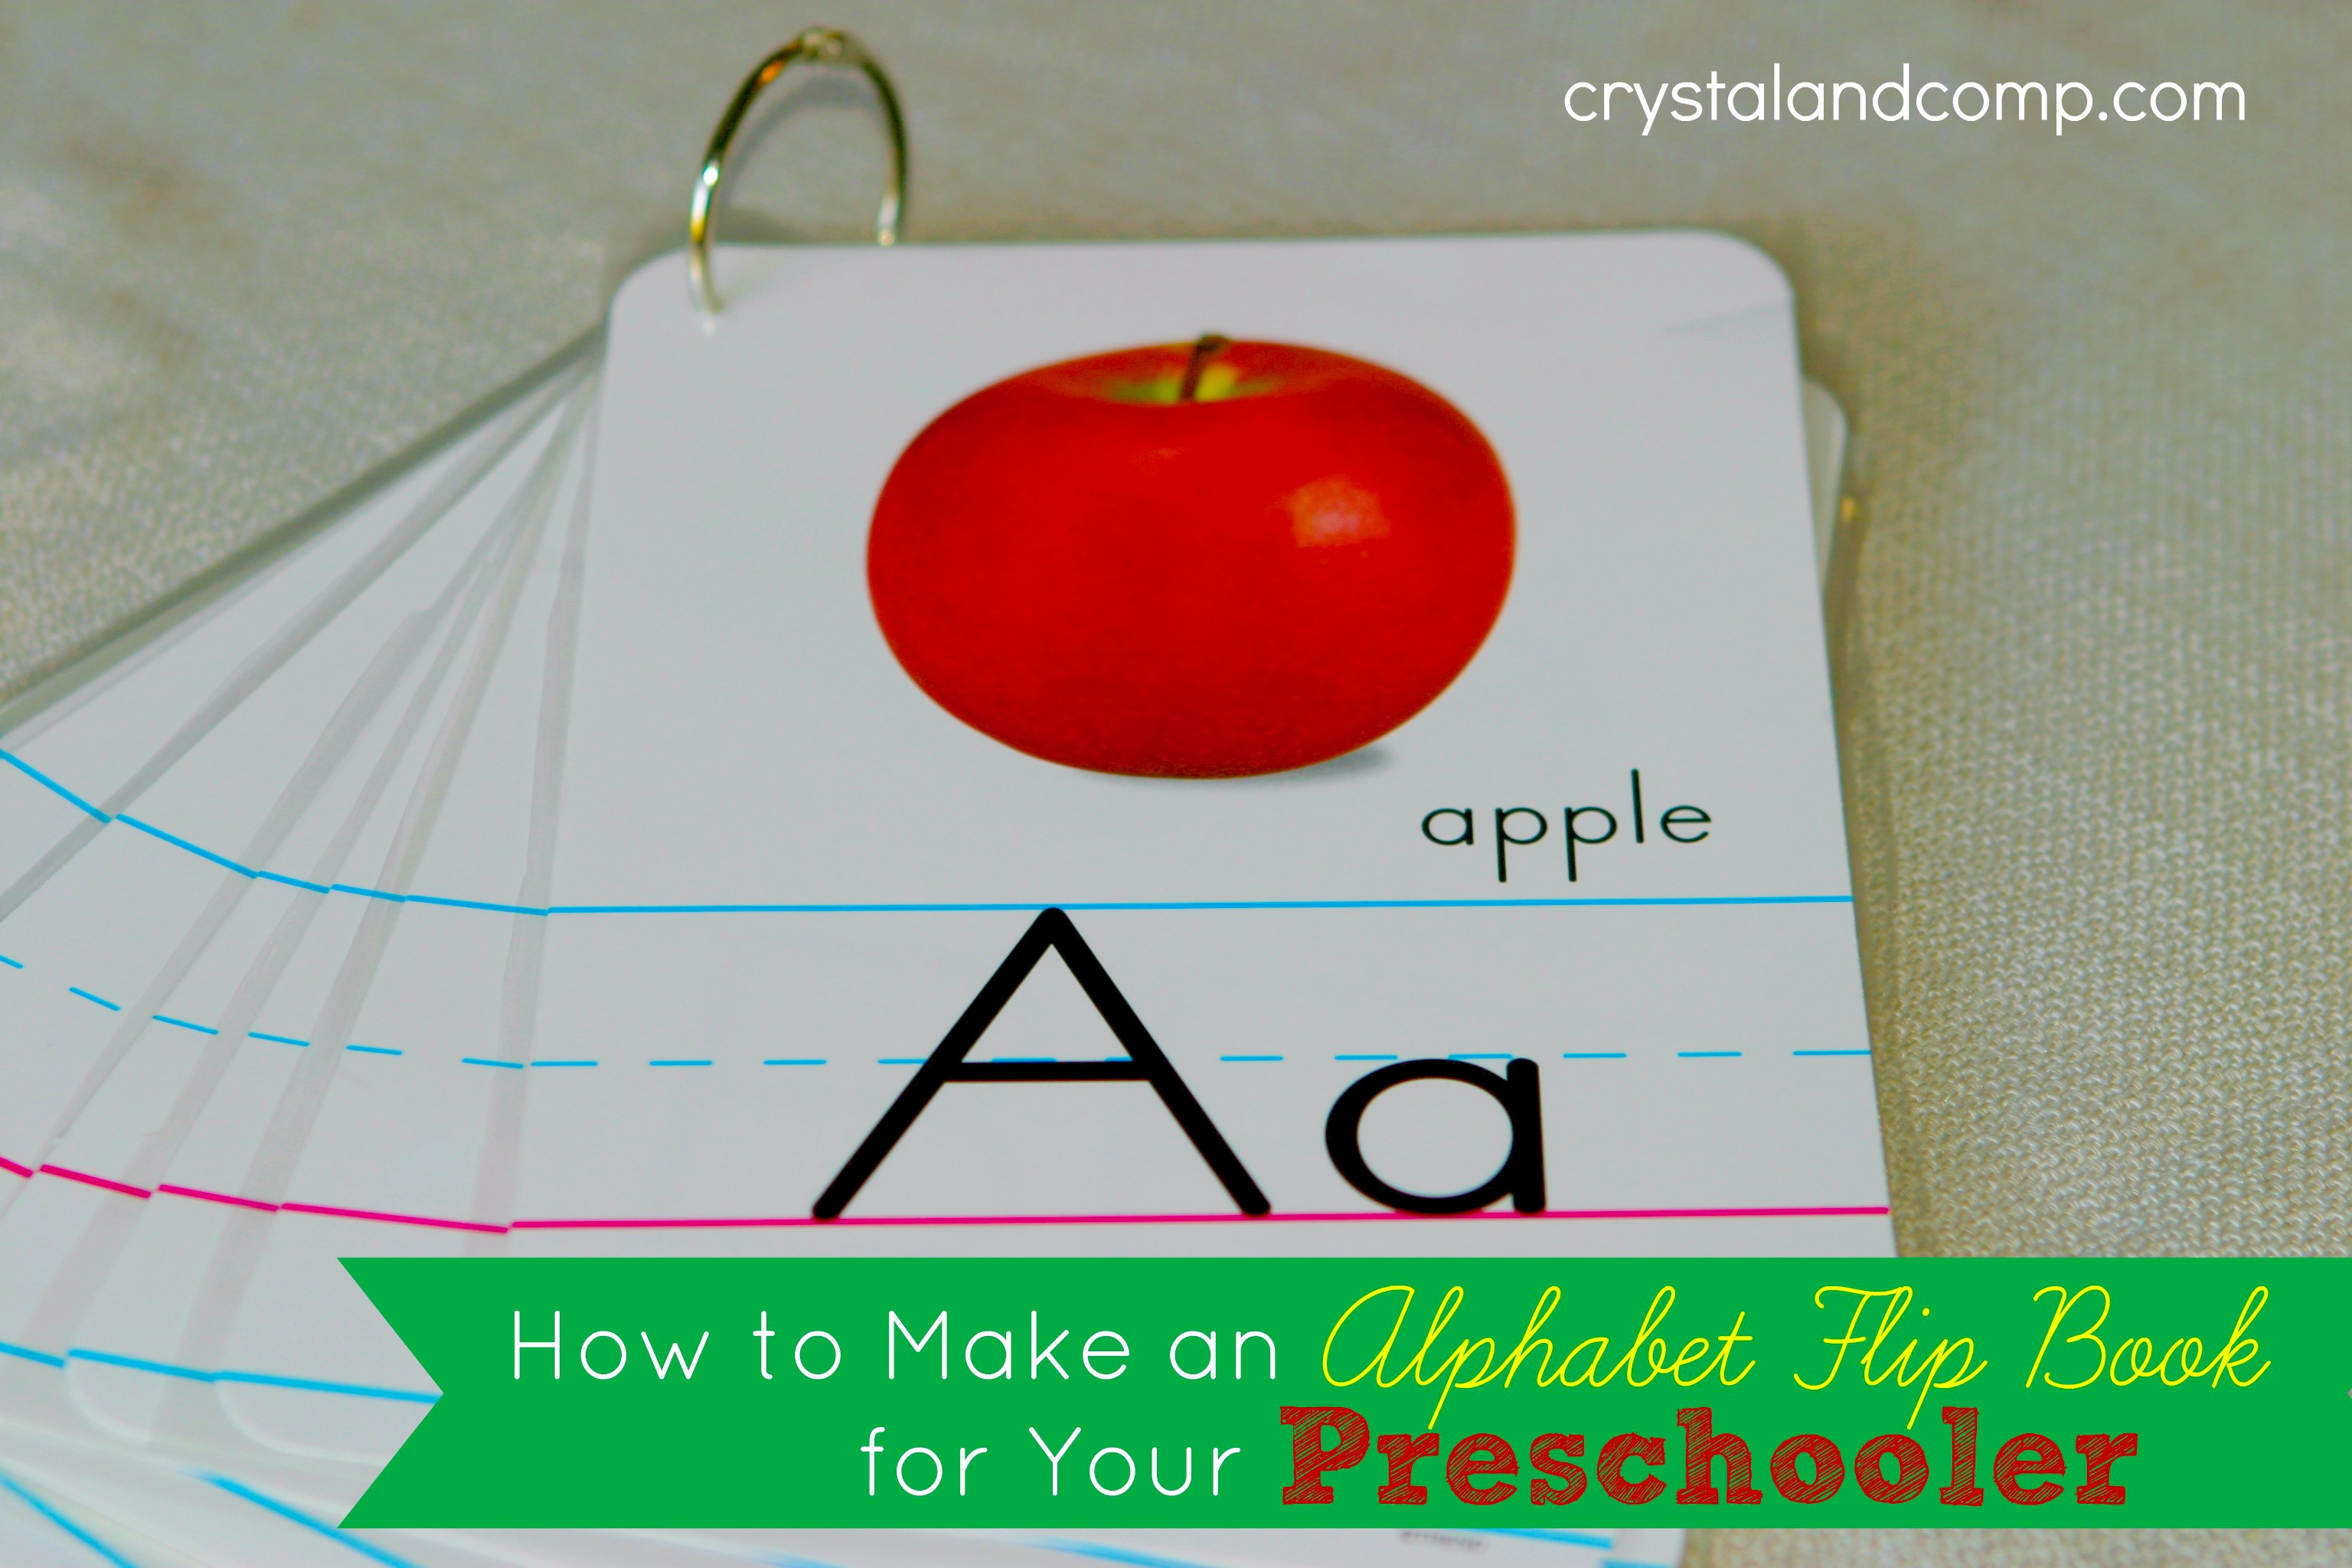 photograph about Printable Flip Book called Practice Your Preschooler Their ABCs